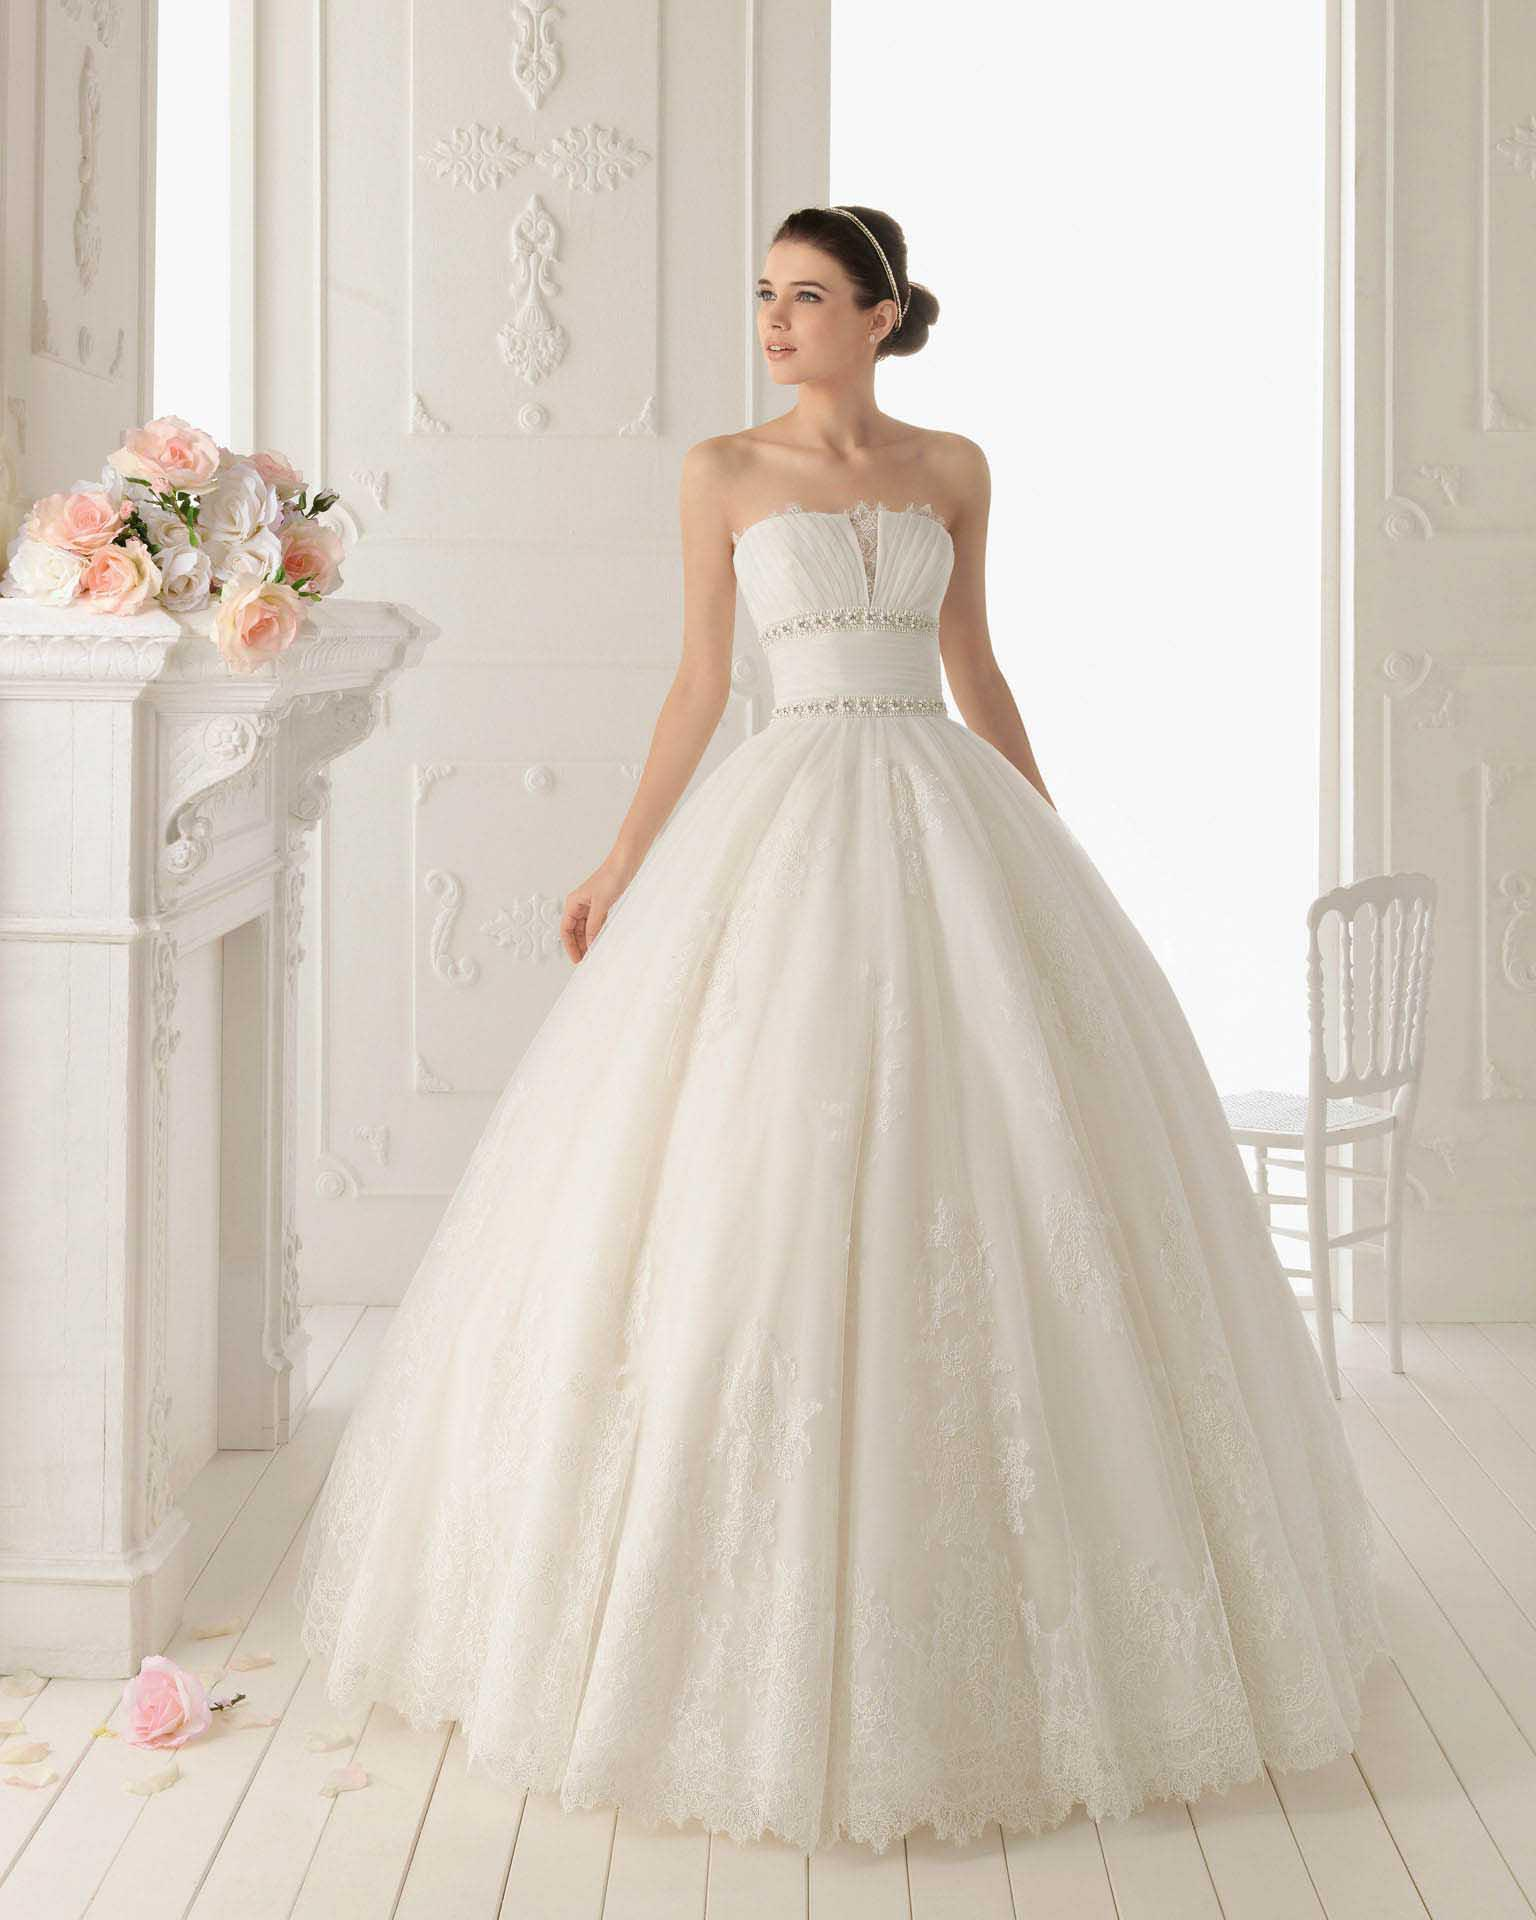 Simple ball gown wedding dresses a line strapless